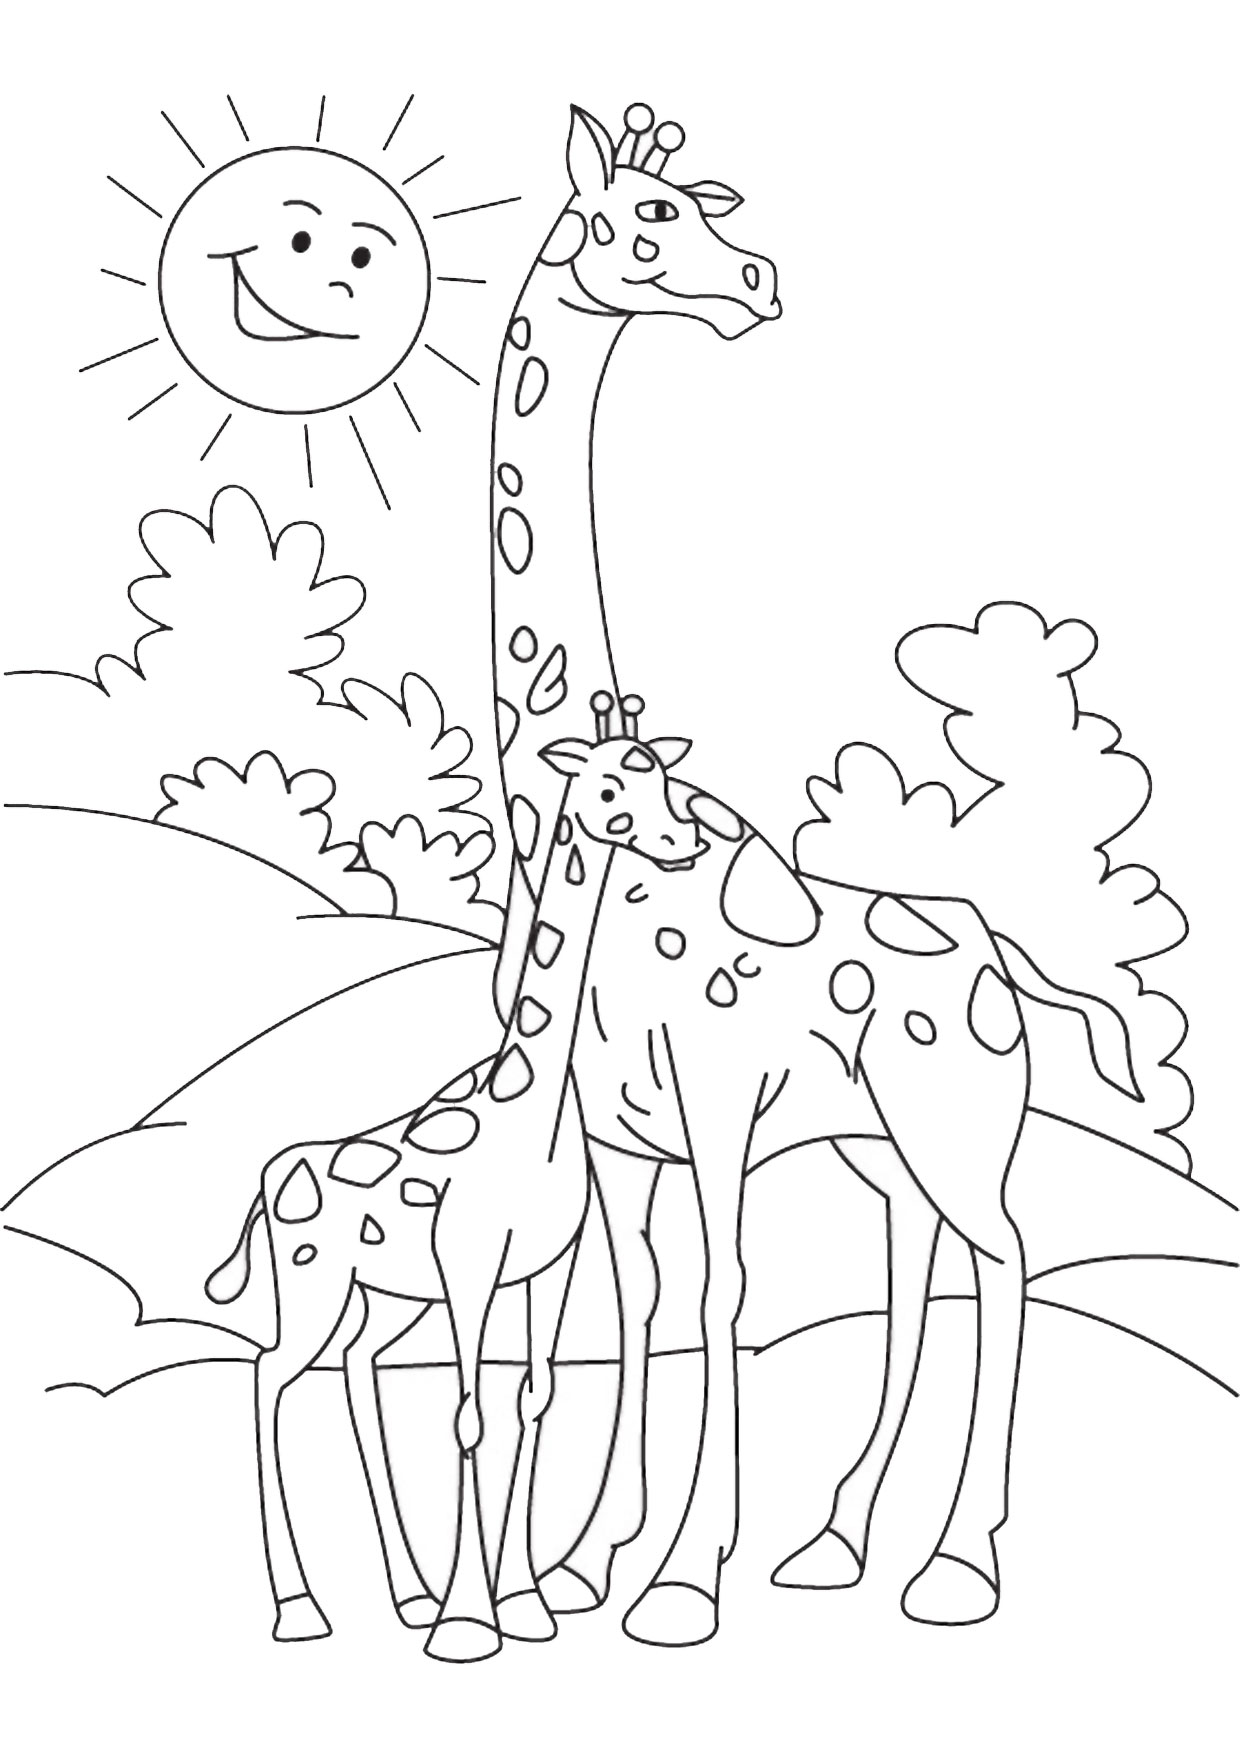 Giraffa in versione cartoon 01